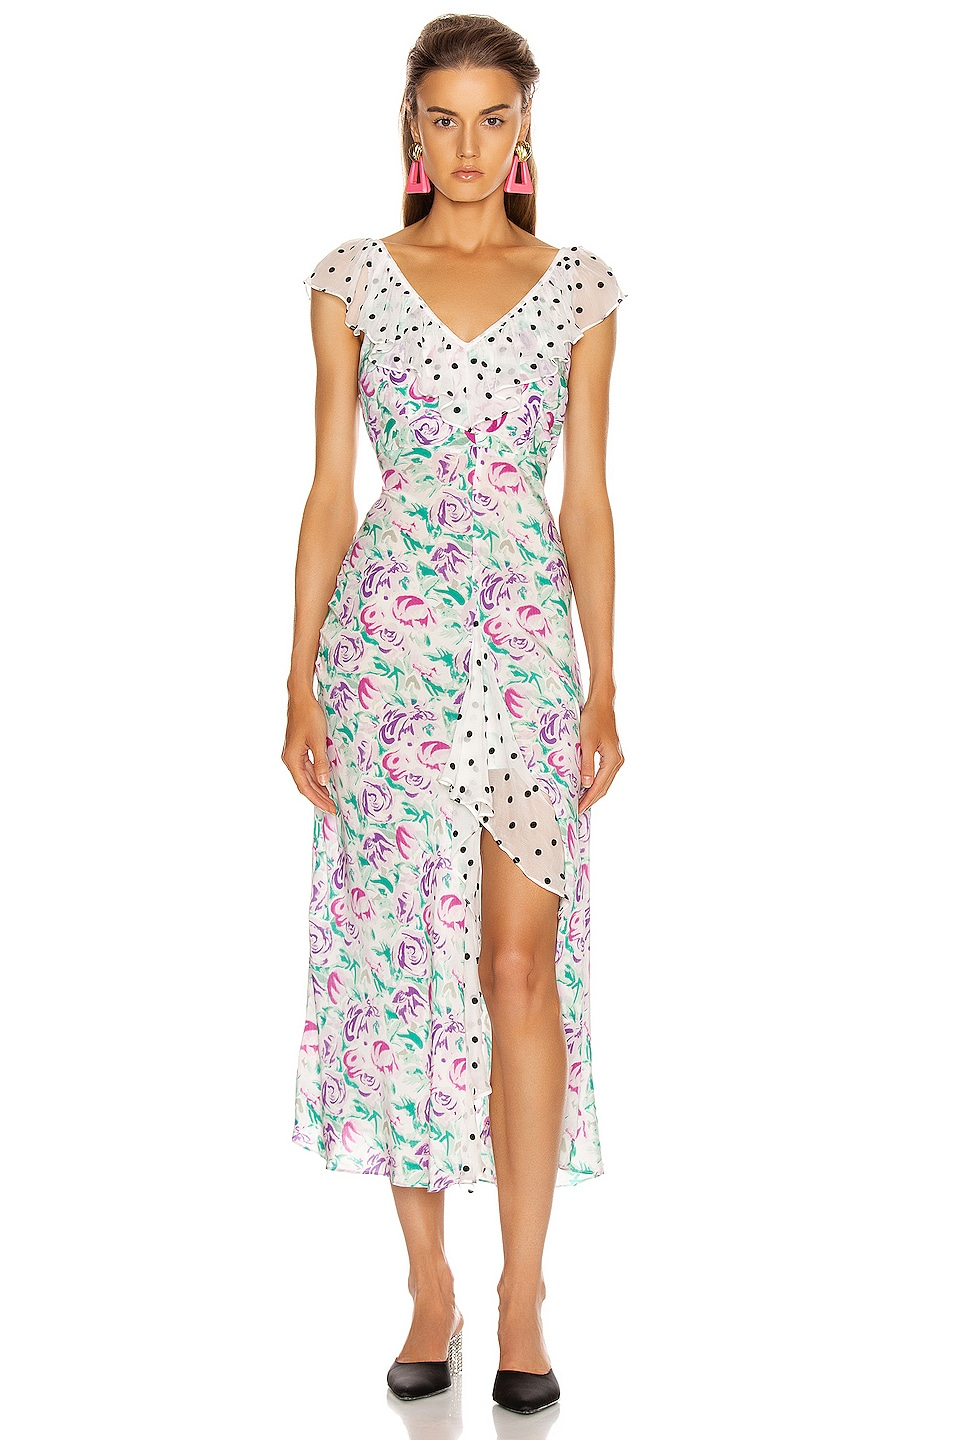 Image 1 of RIXO Antoinette Maxi Dress in Polka Dot Italian Floral & Pink Teal